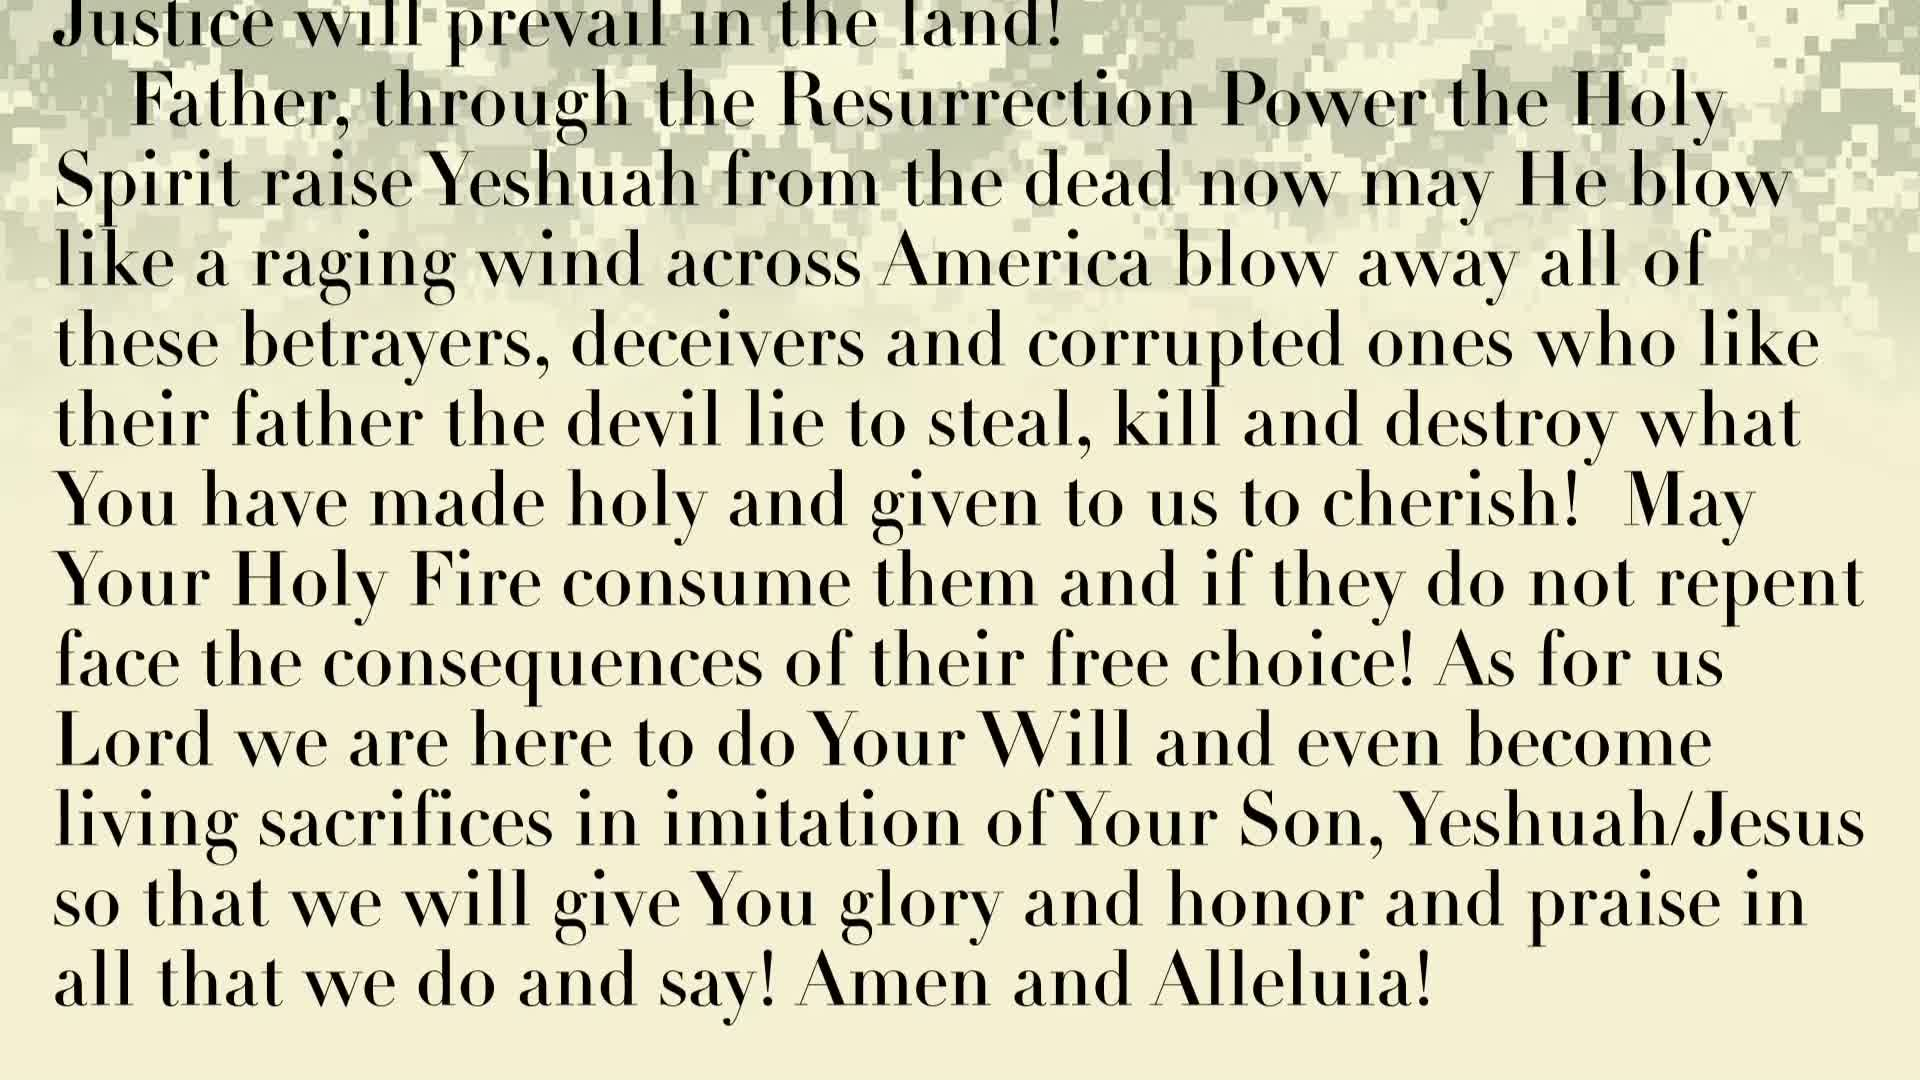 PRAYER FOCUS: THE RESURRECTION OF JESS/YESHUAH PROVES THAT GOD IS ALWAYS WITH US AND WHAT HE PROMISES HE FULFILLS!